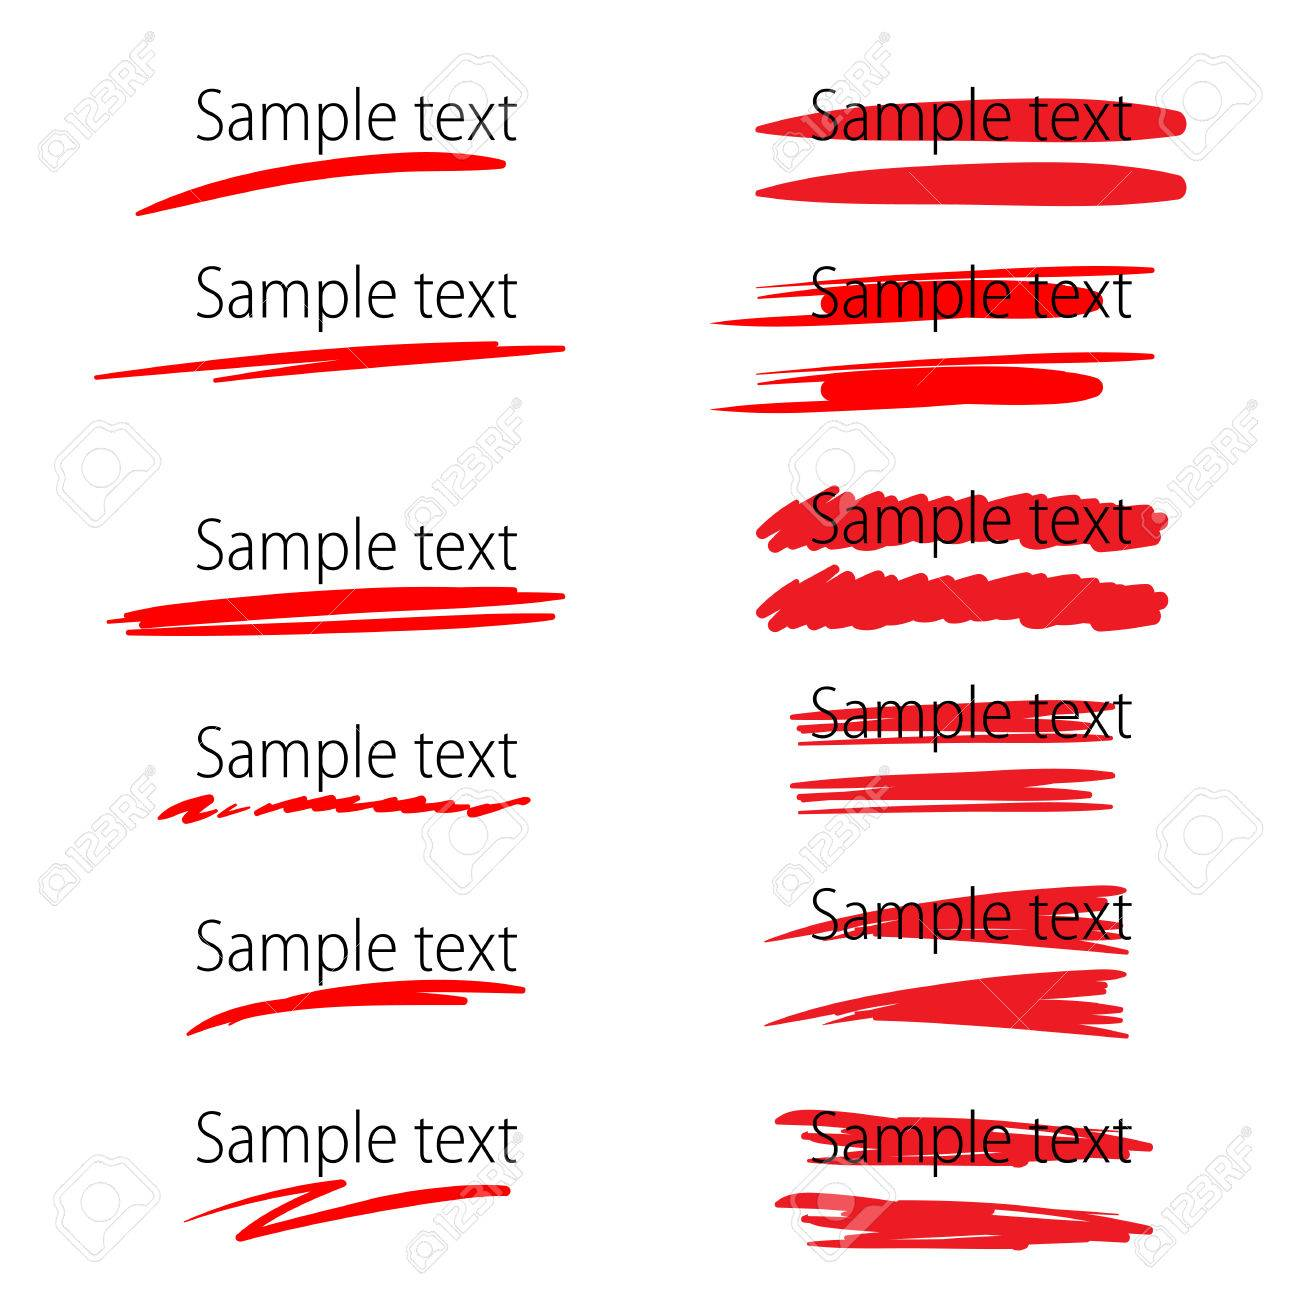 Set of vector highlighter marker strokes for text accentuation - 54294821